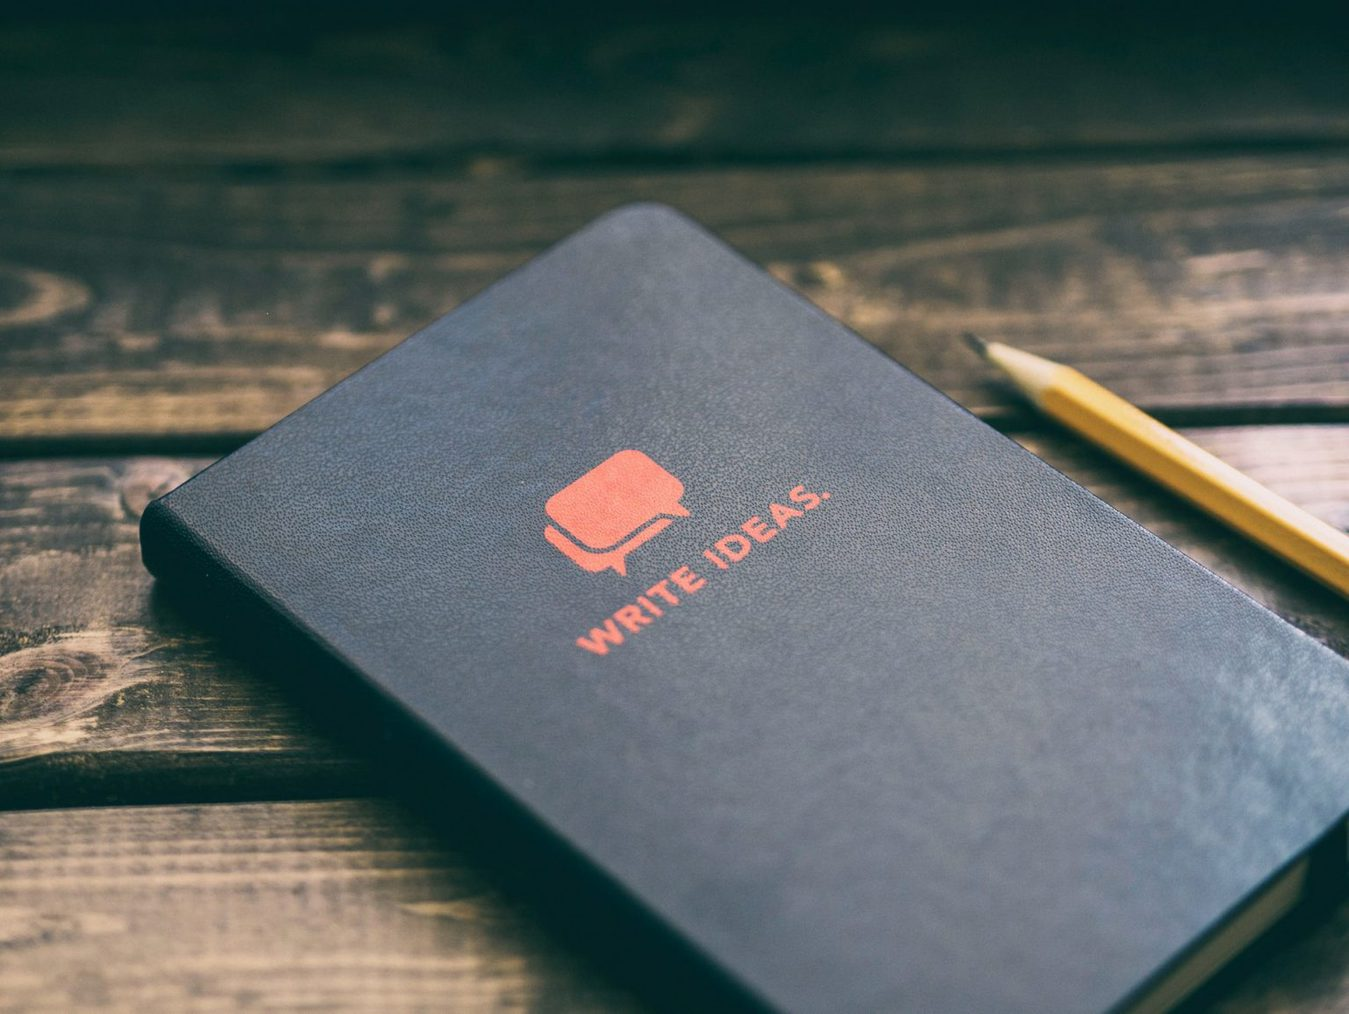 Notebook for ideas on a wooden table